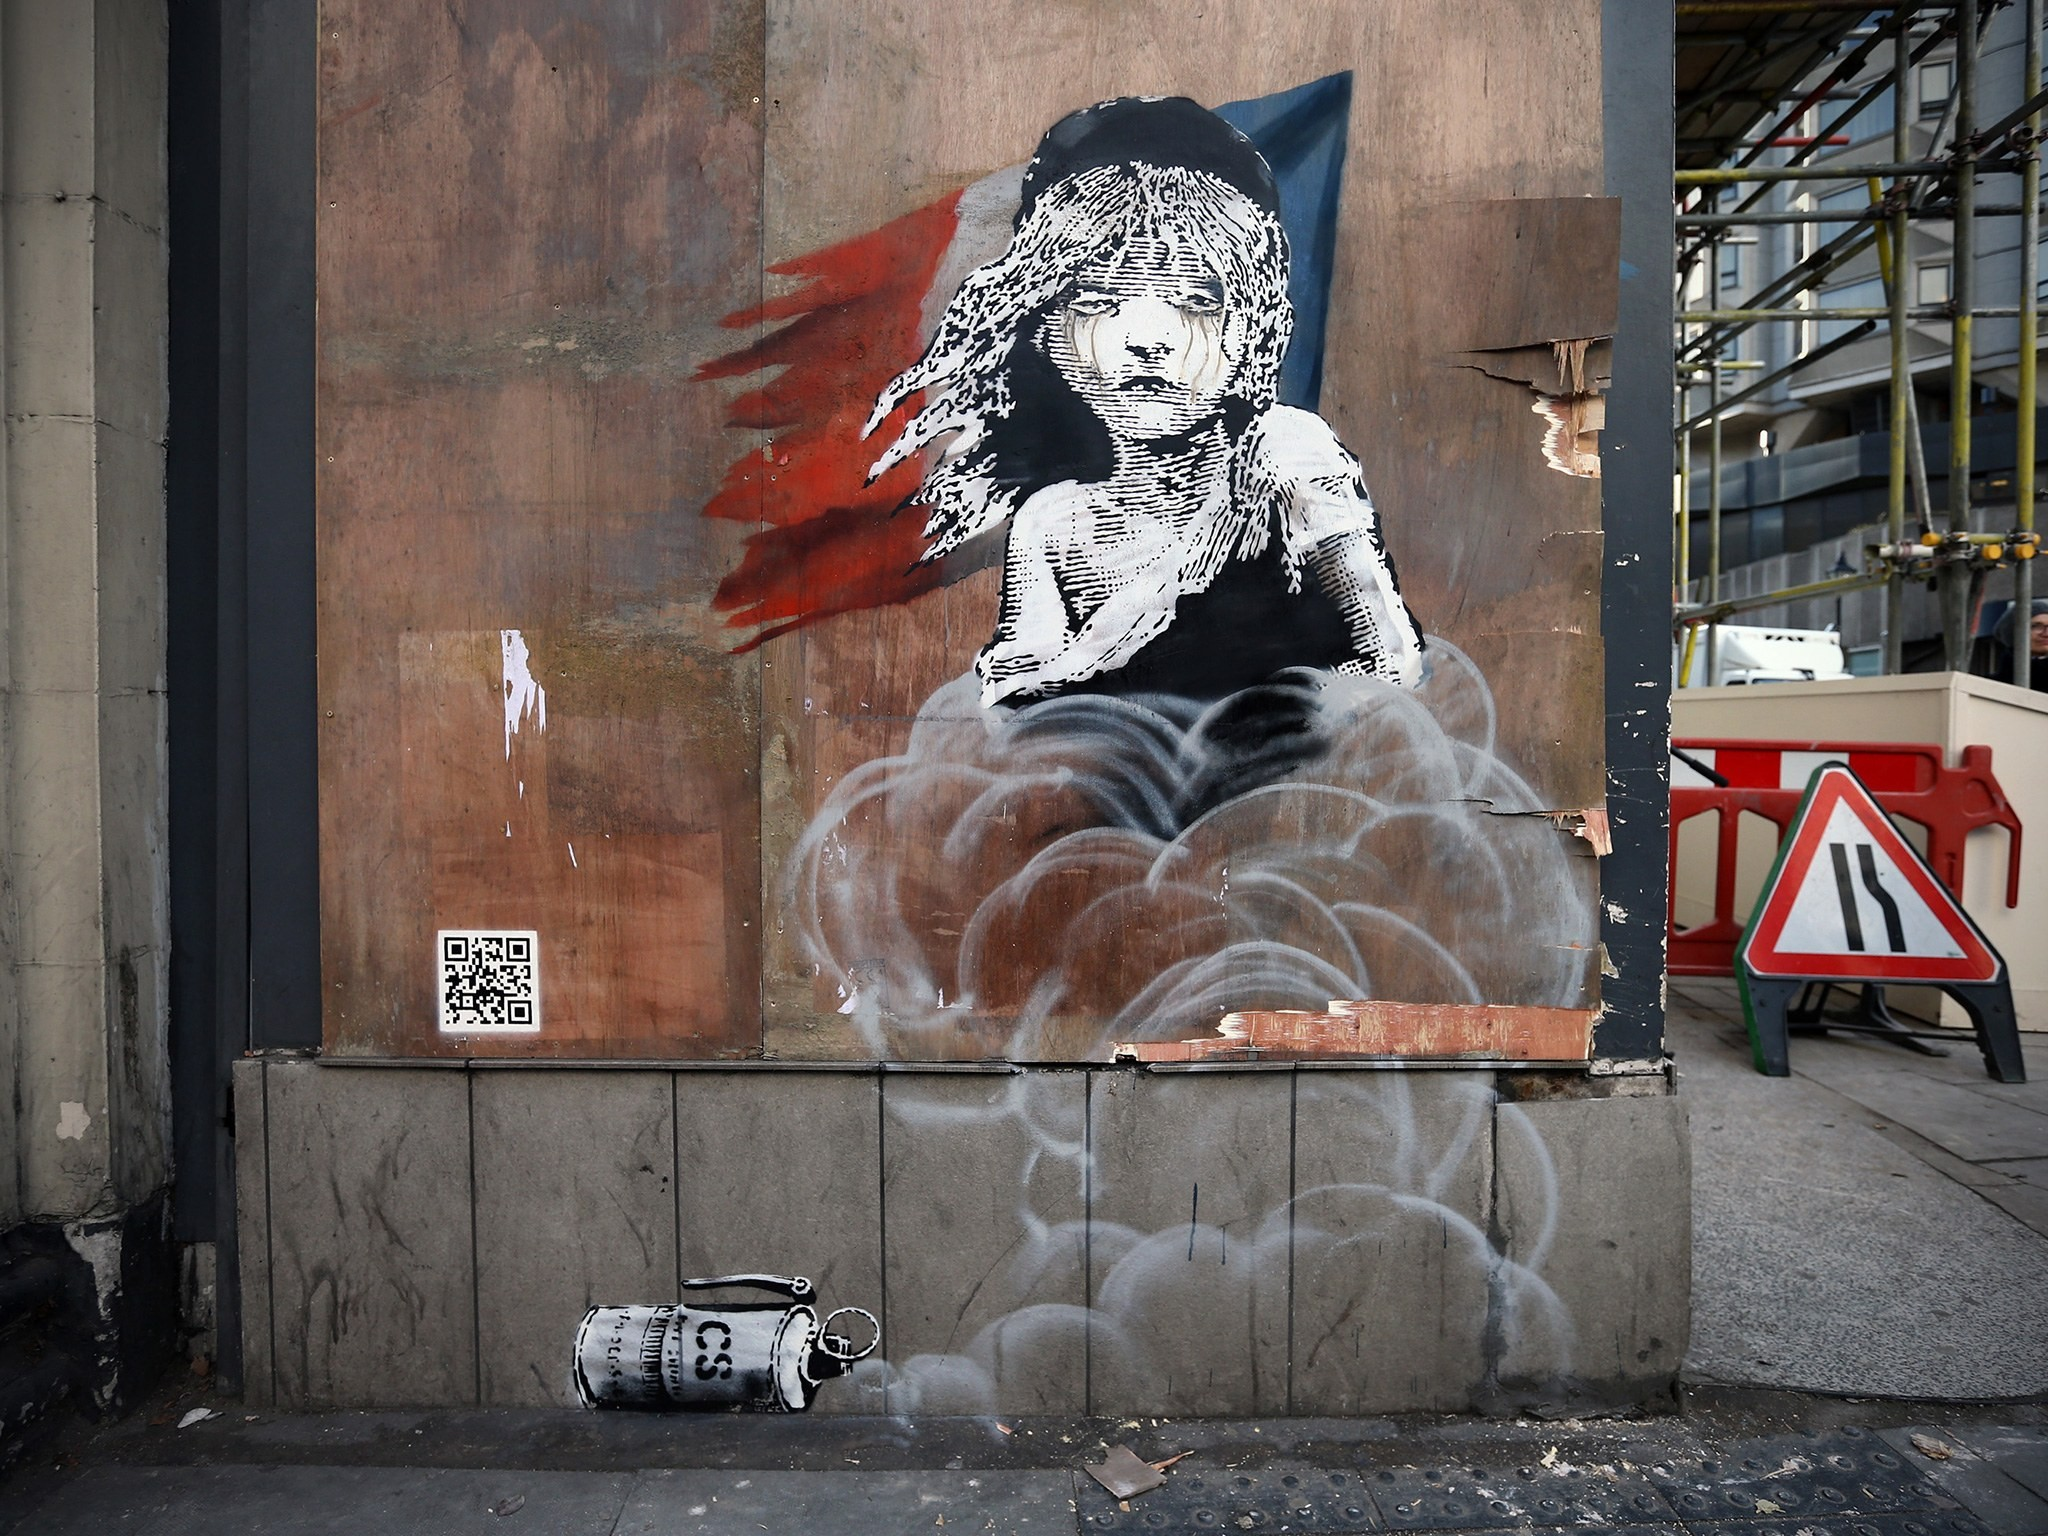 banksy-calais-cr-getty.jpg